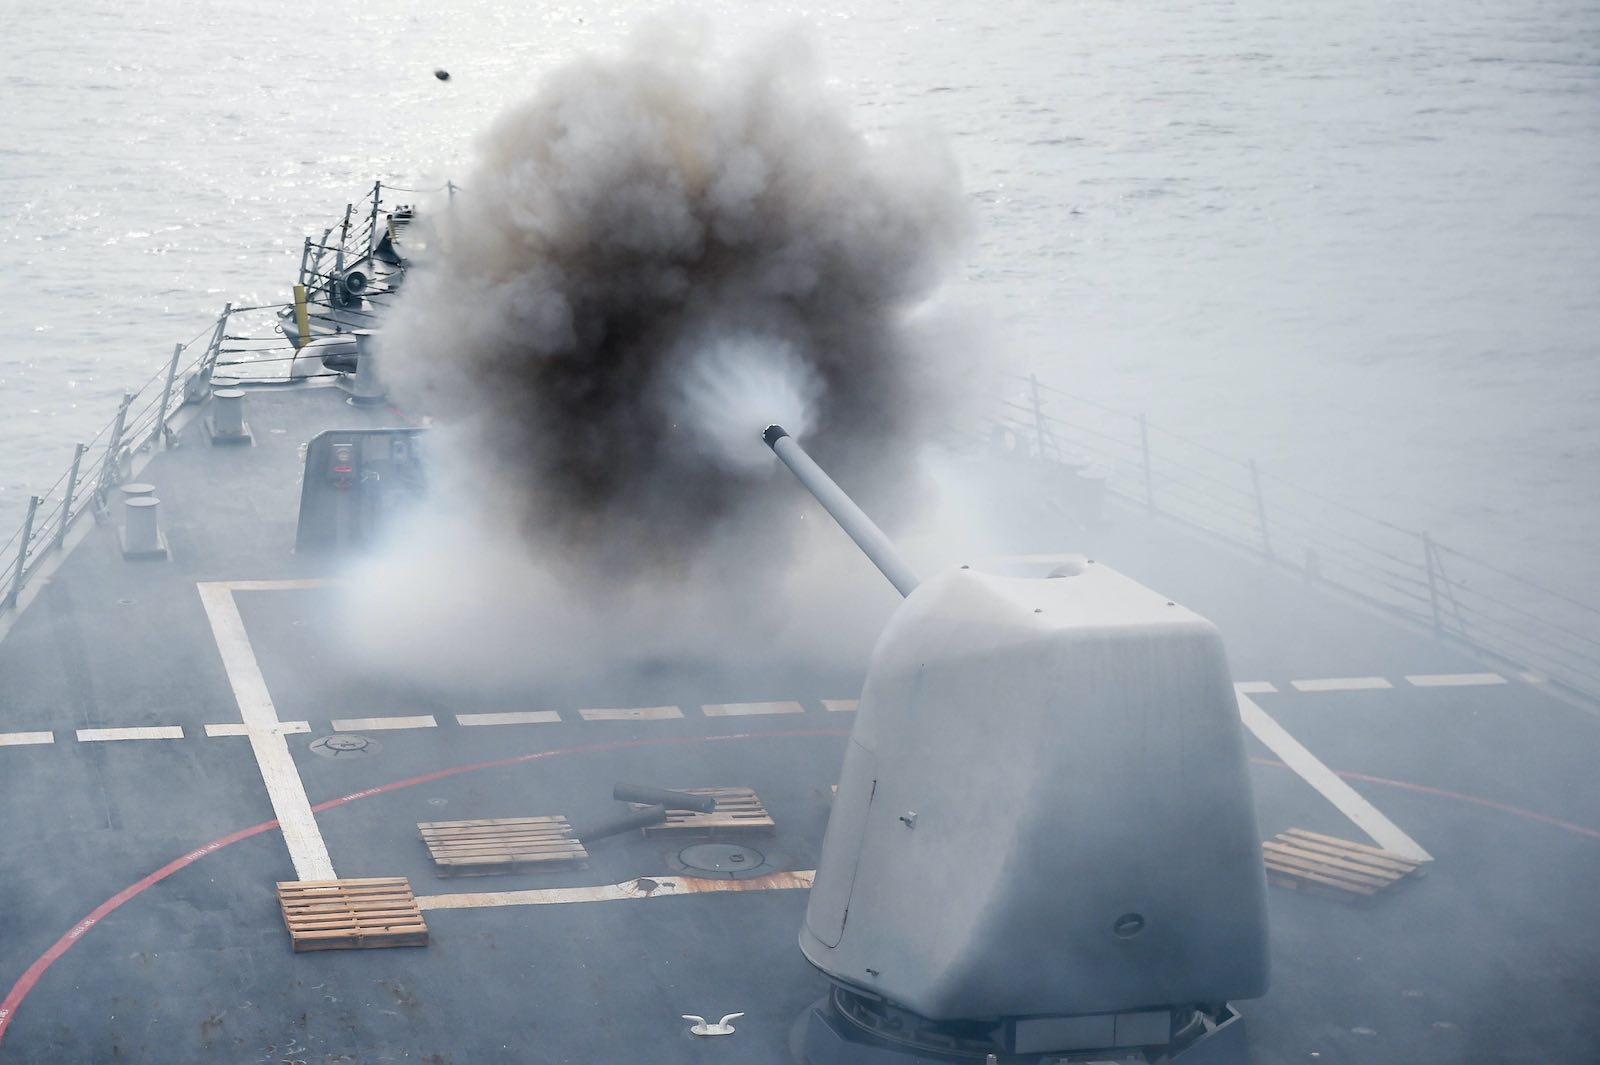 Live fire exercises on the USS Stethem near Singapore in 2016 (US Navy/Flickr)